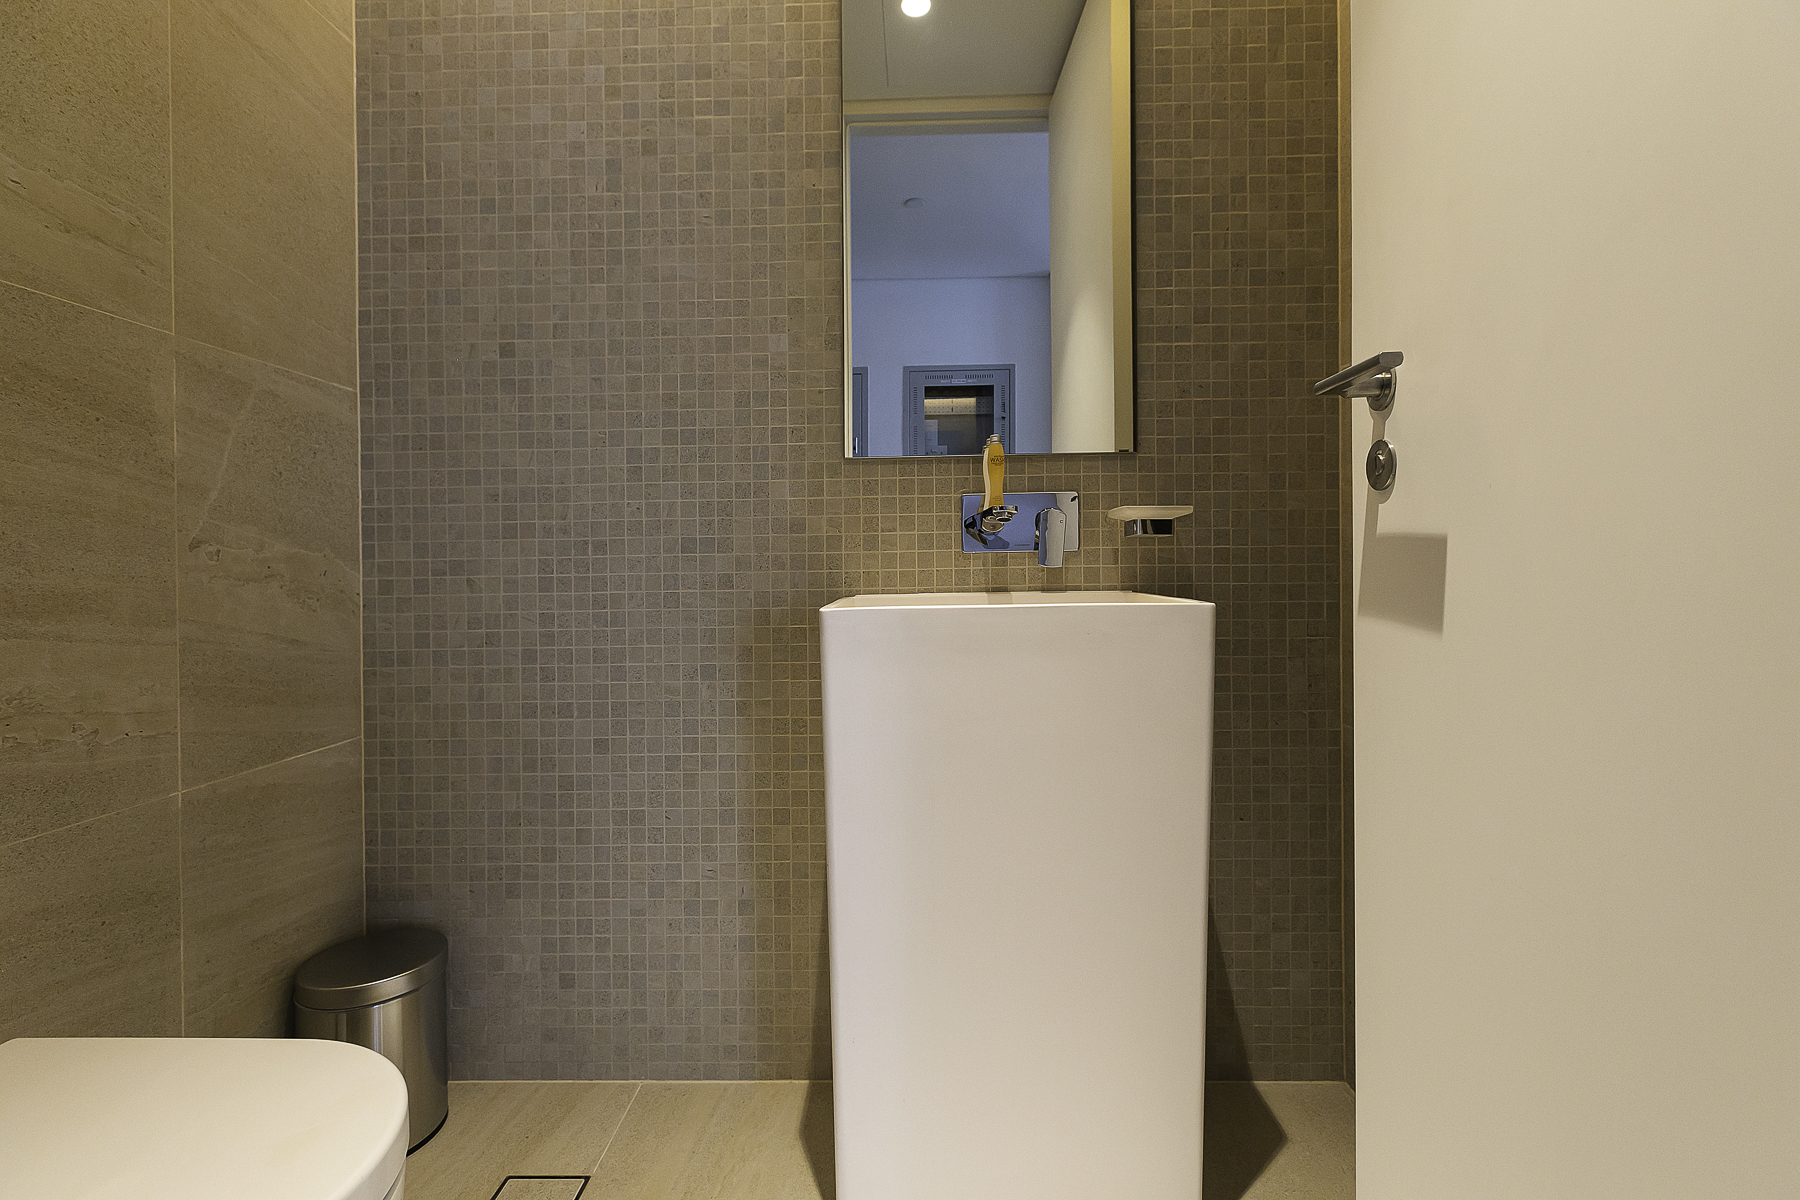 Apartment Experience the Bluewaters lifestyle On This All New 1 Bed in Building 5 photo 21298962